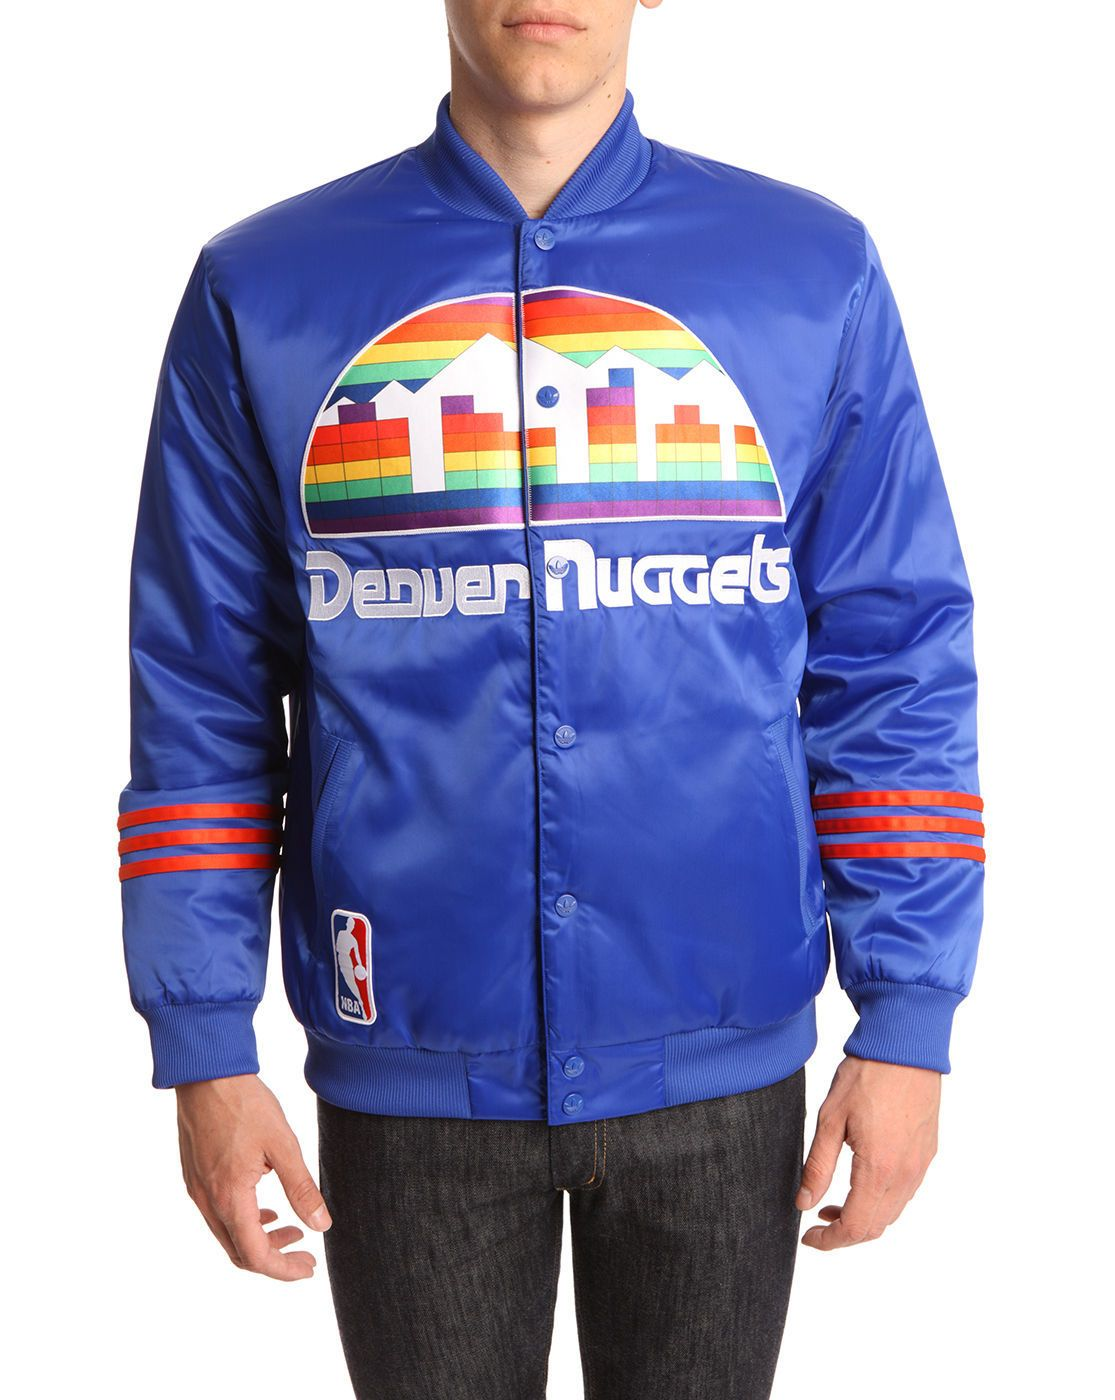 Denver Nuggets Blue Varsity Jacket Adidas Men Outlet Blue Men Jackets Varsity Jacket Mens Jackets